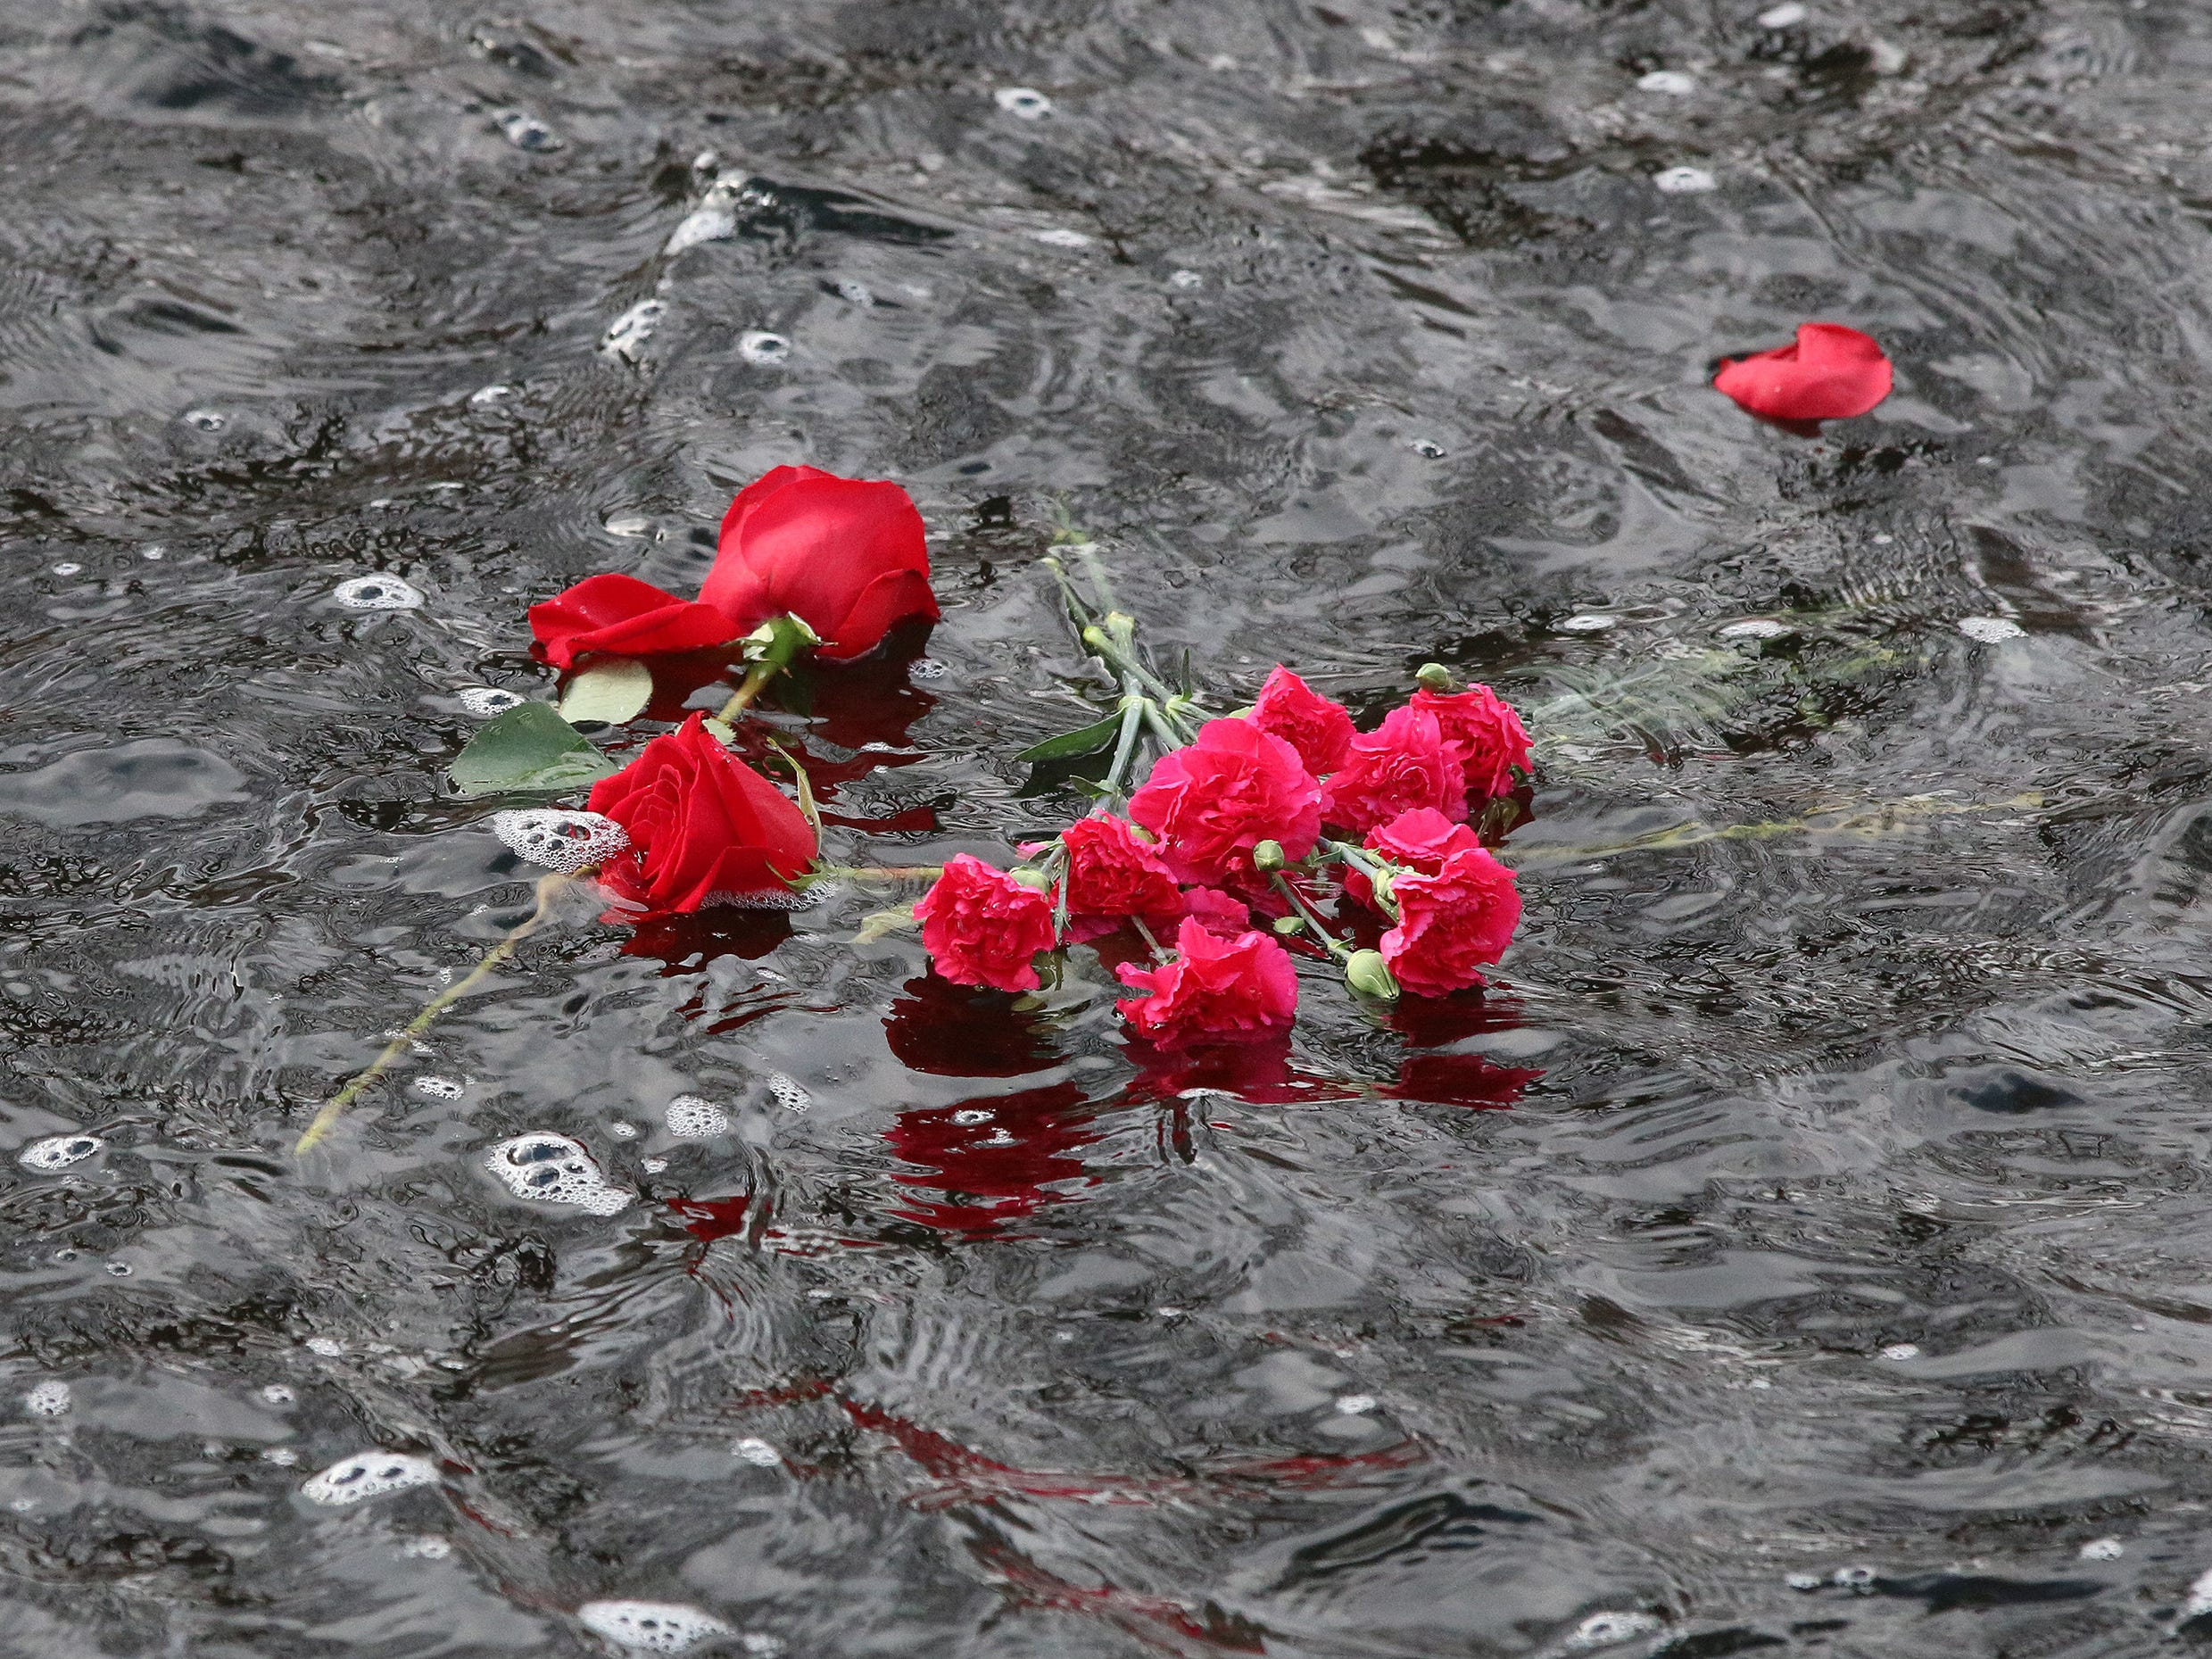 Roses and carnations flow down the Mullett River in honor of those who died at Peal Harbor in 1941 during a ceremony, Friday, December 7, 2018, in Plymouth, Wis.